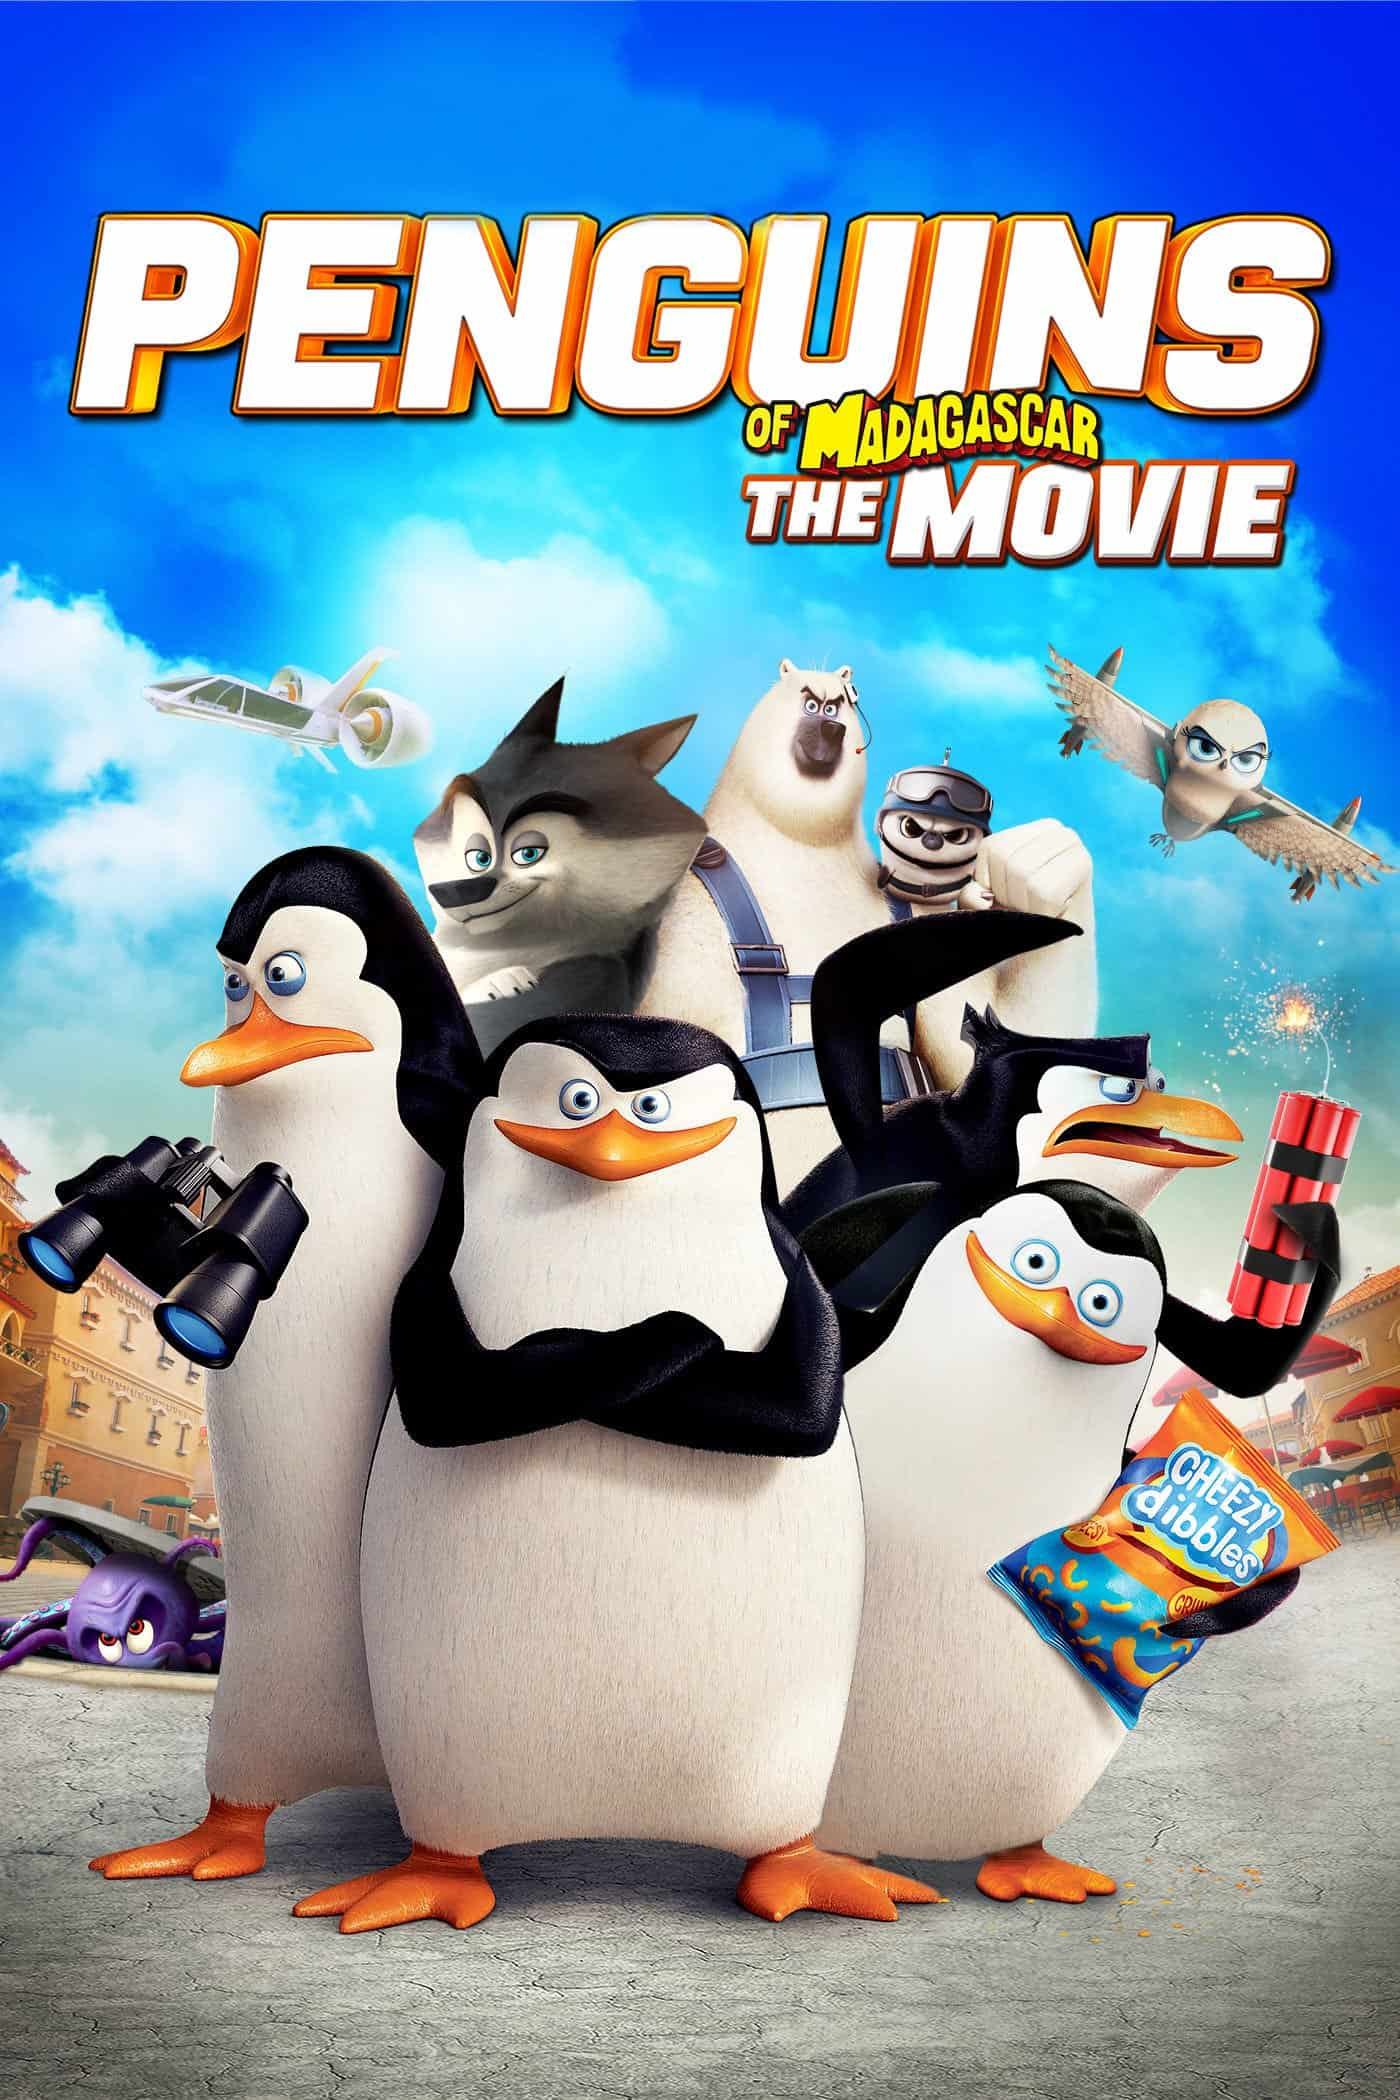 Penguins of Madagascar, 2014